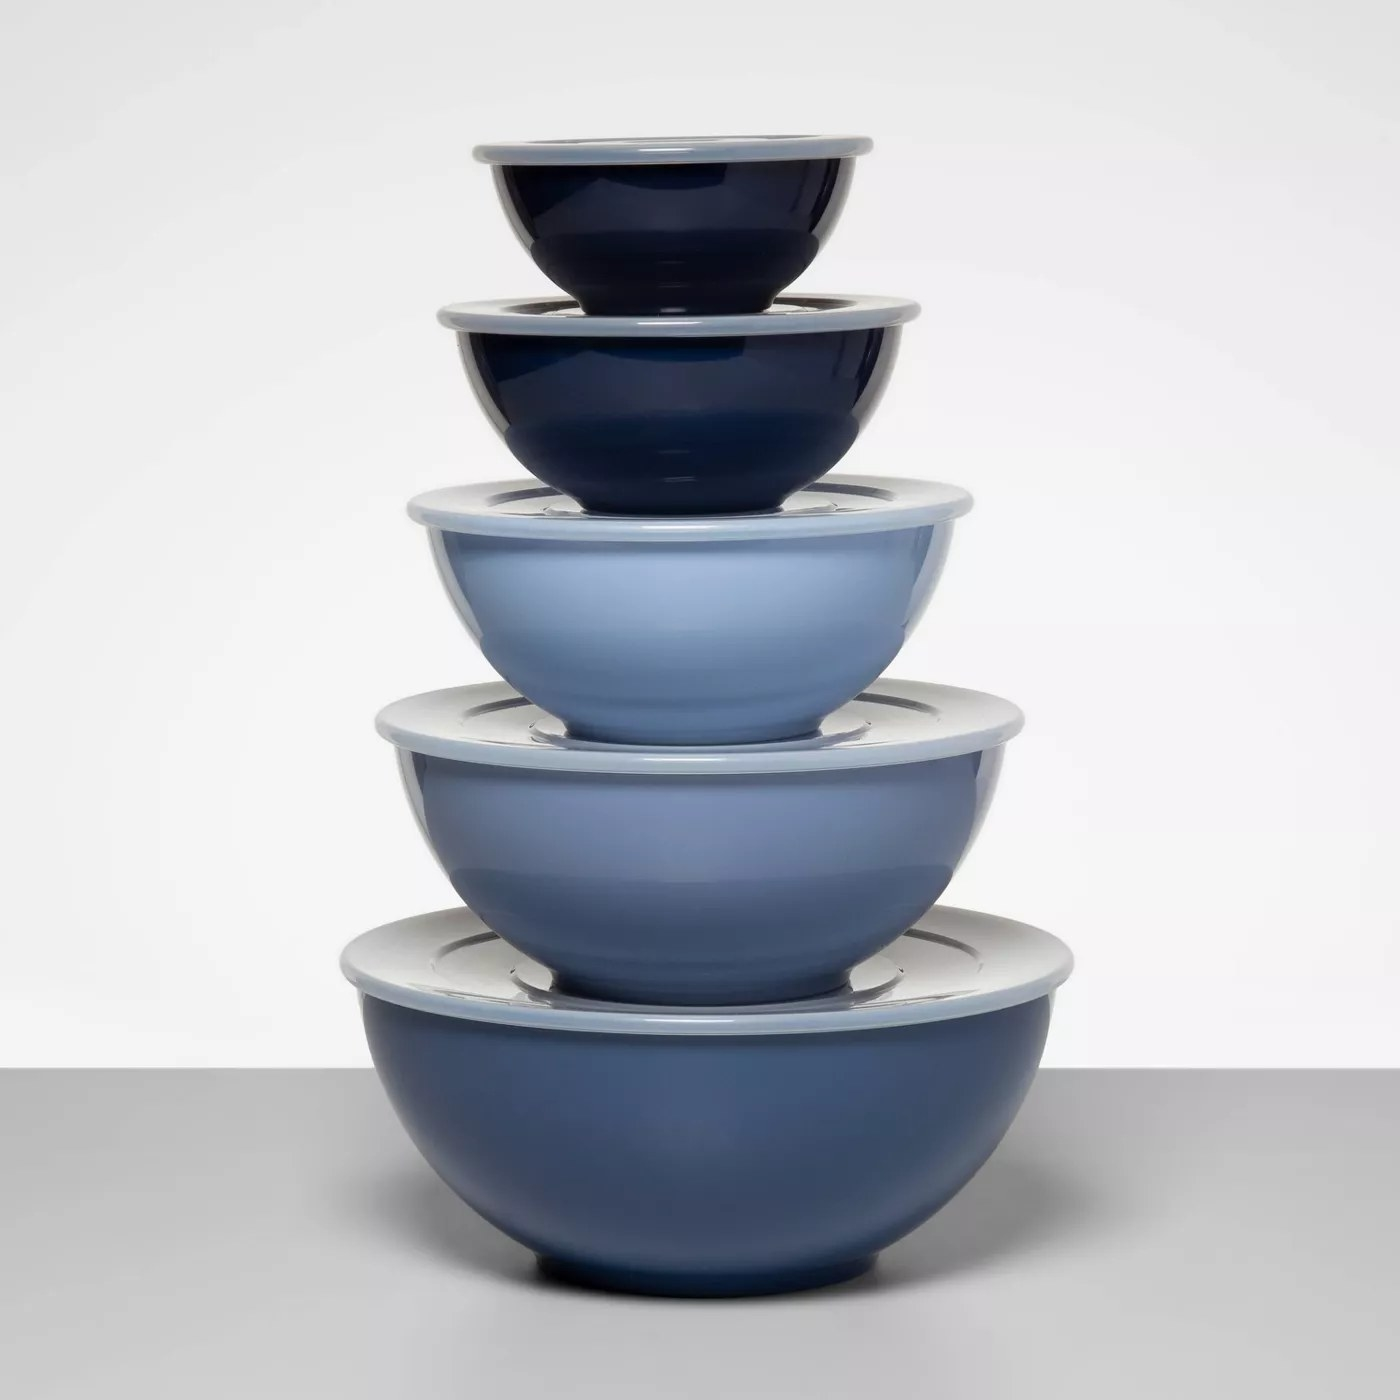 A tower of the five mixing bowls with the largest one on the bottom and the smallest one on top